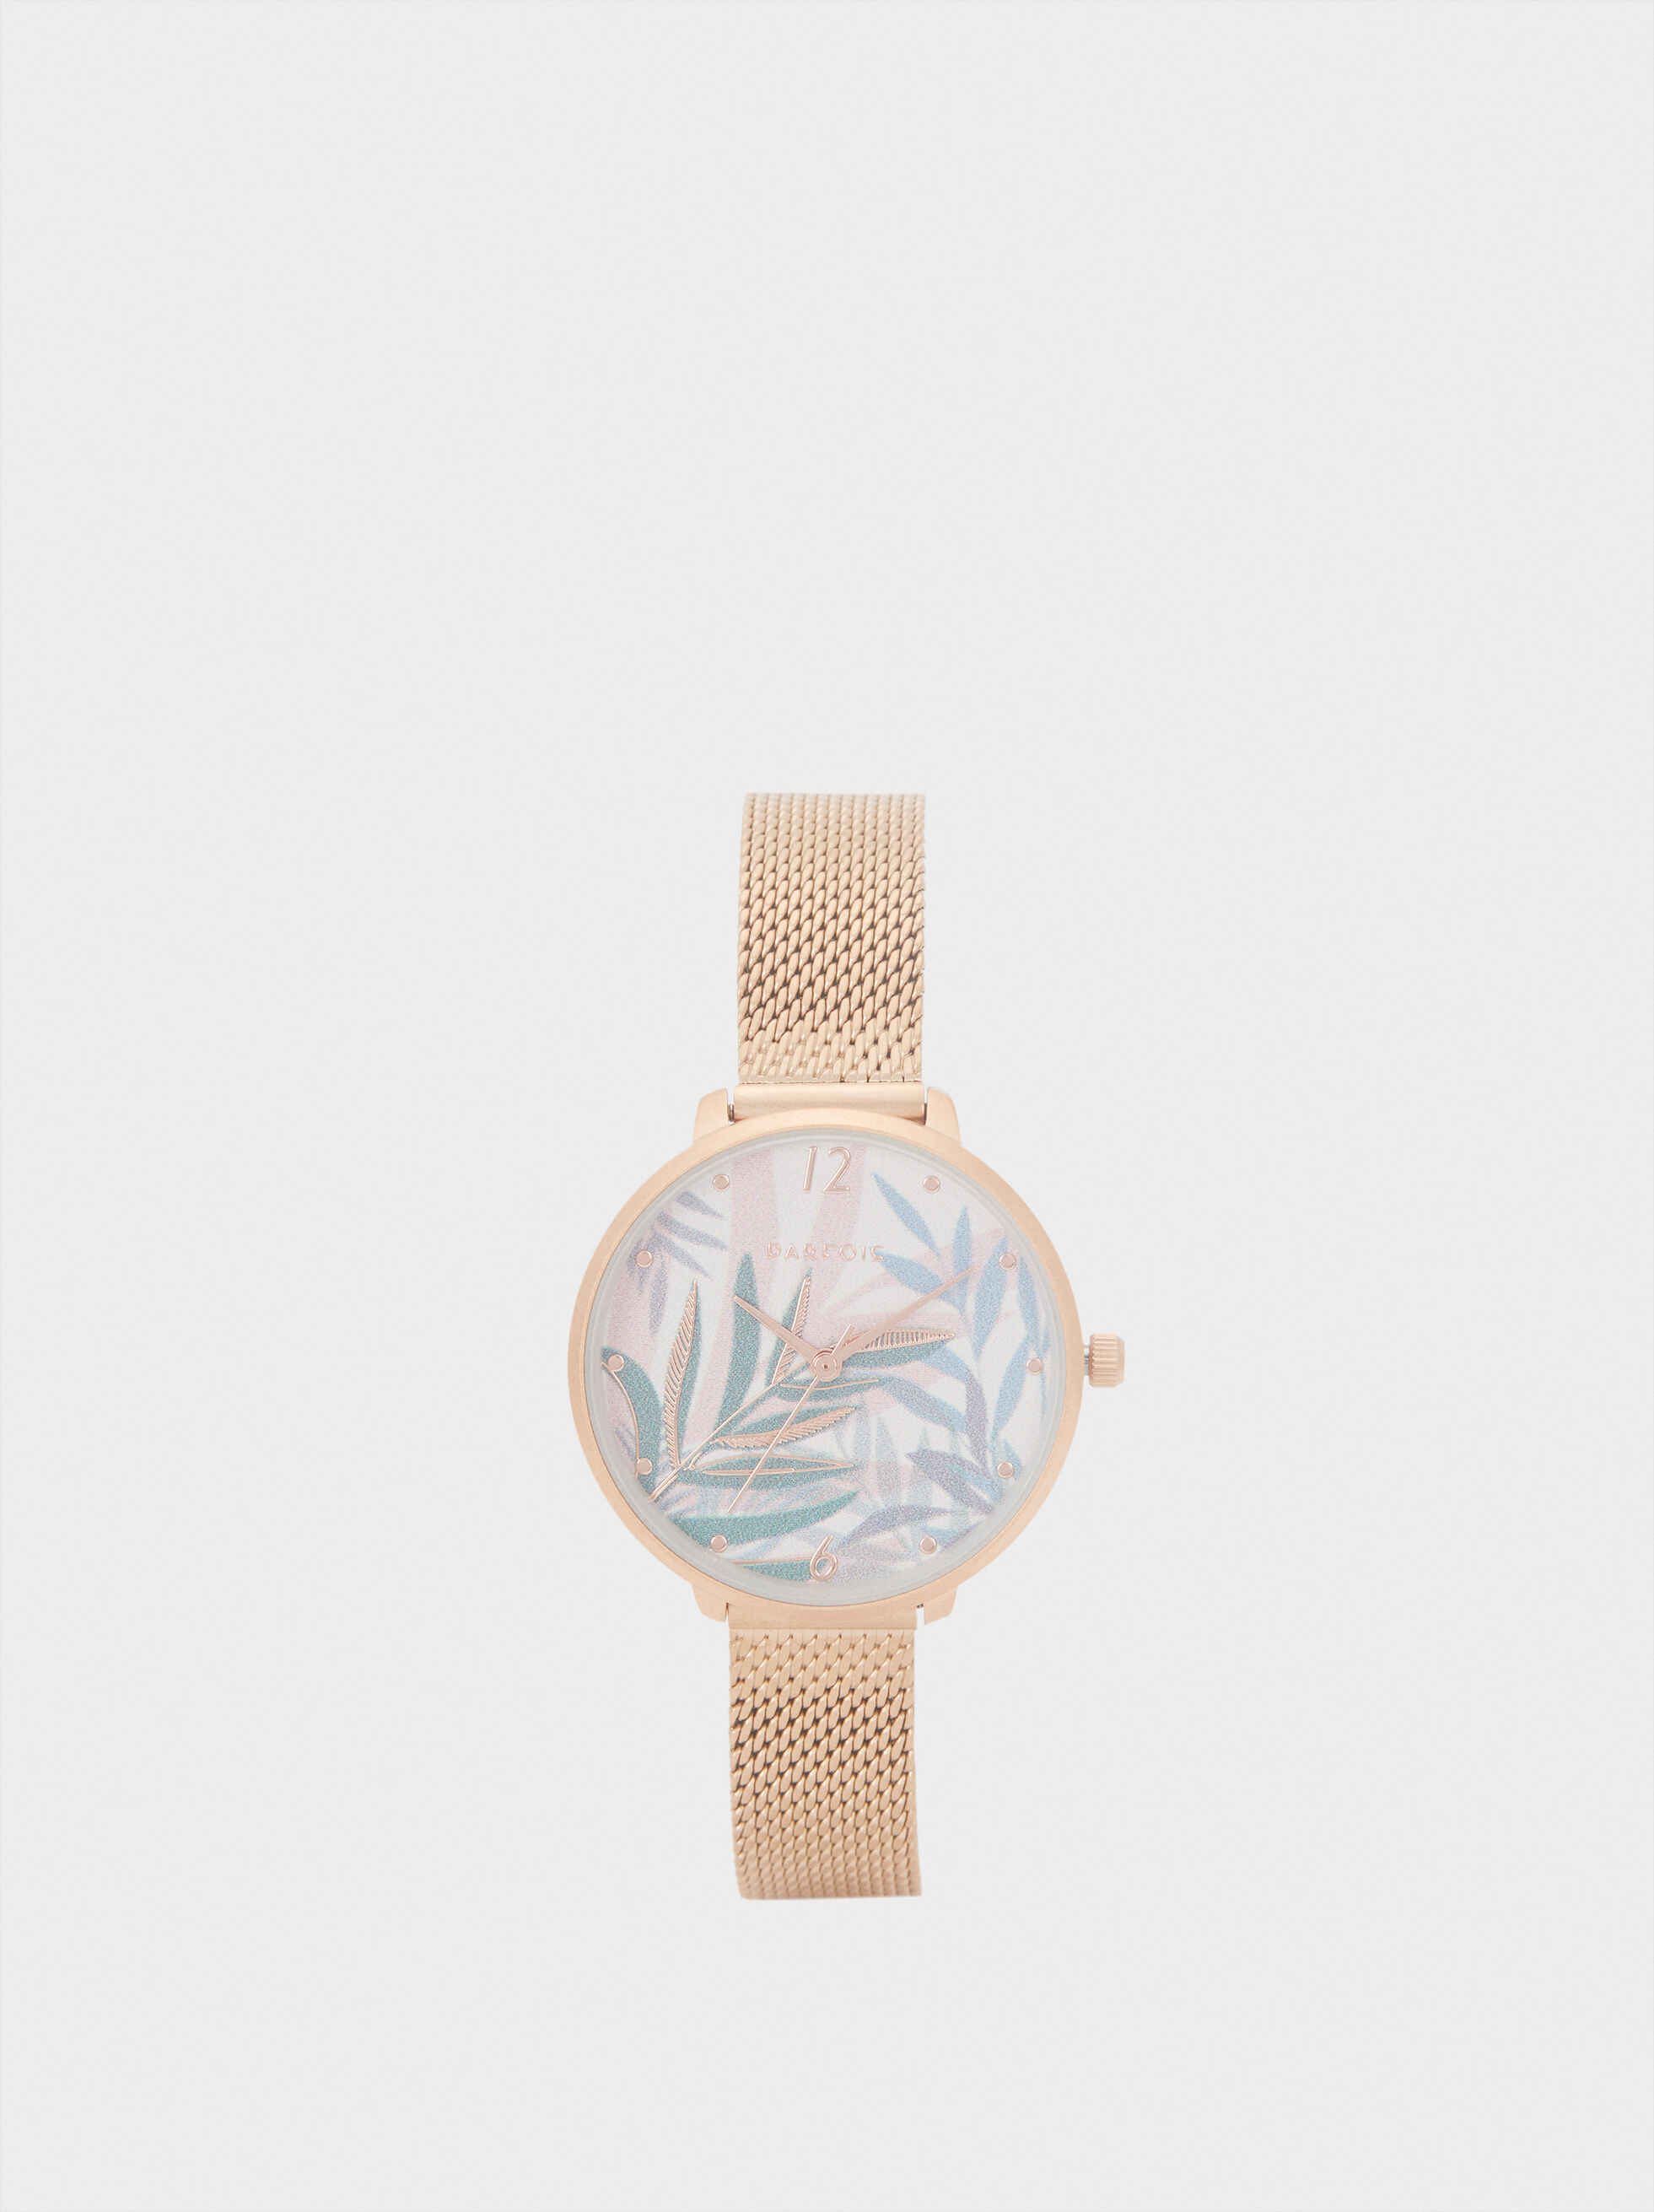 Watch With Metallic Mesh Strap And Floral Face, Orange, hi-res